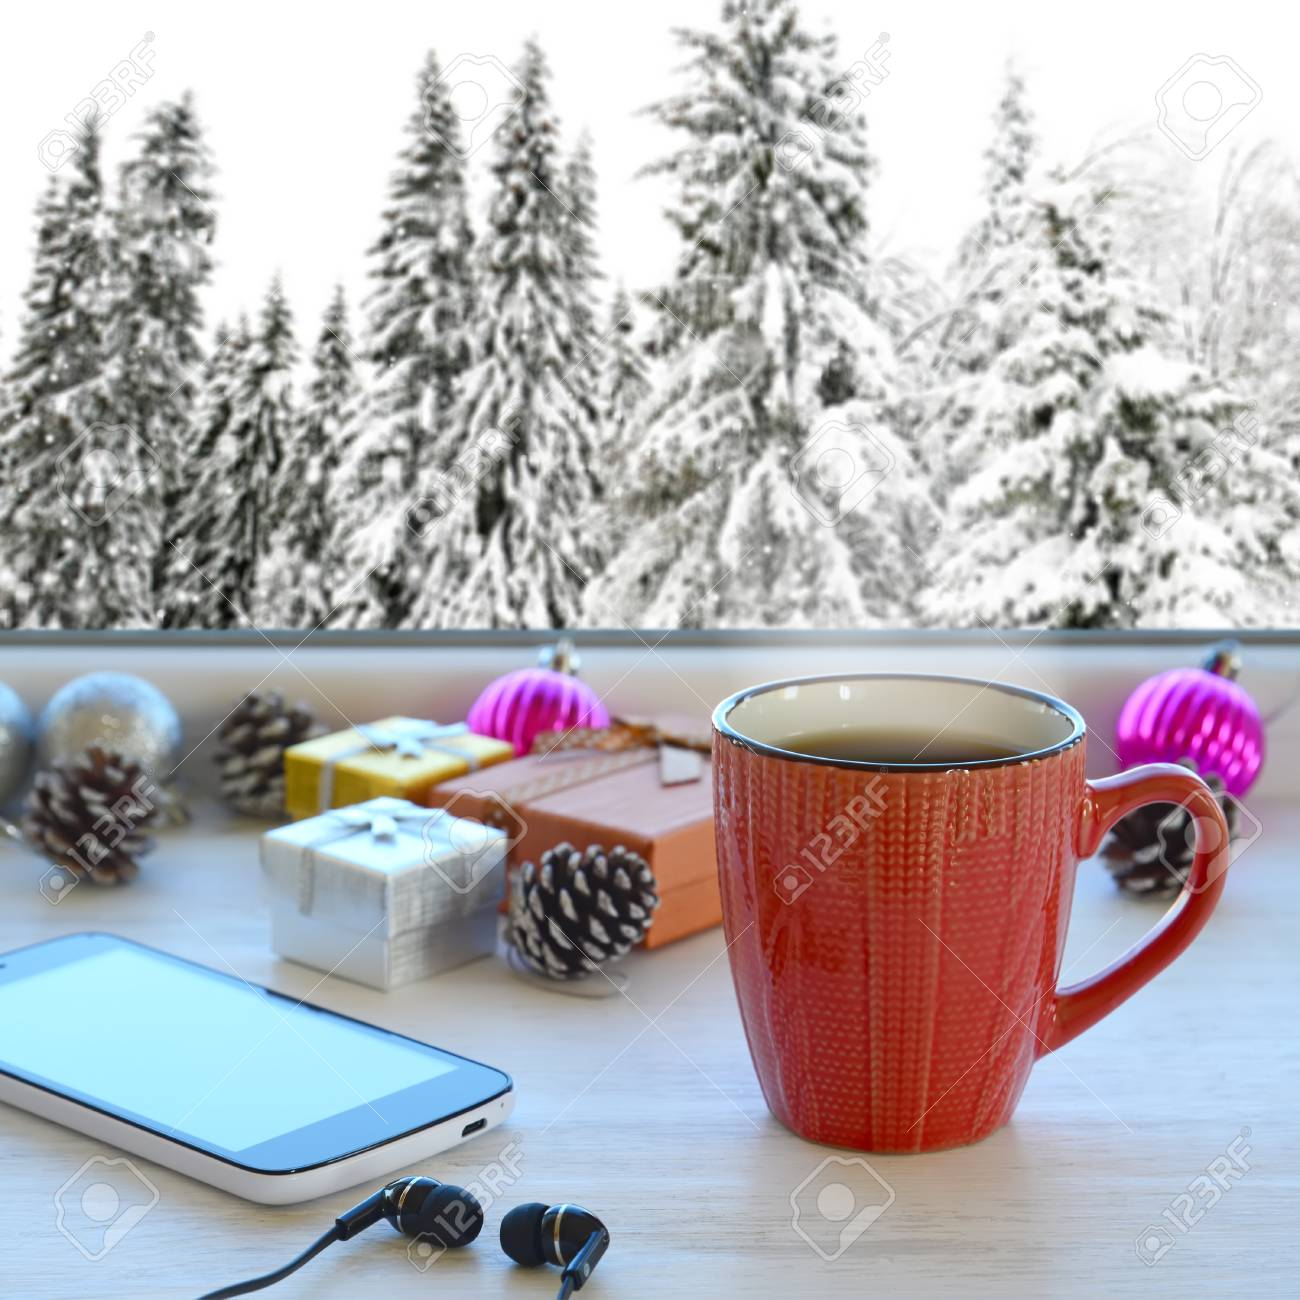 Coffee Christmas Tree Ornaments.Cup Of Coffee Smartphone Headphones Gifts And Christmas Tree